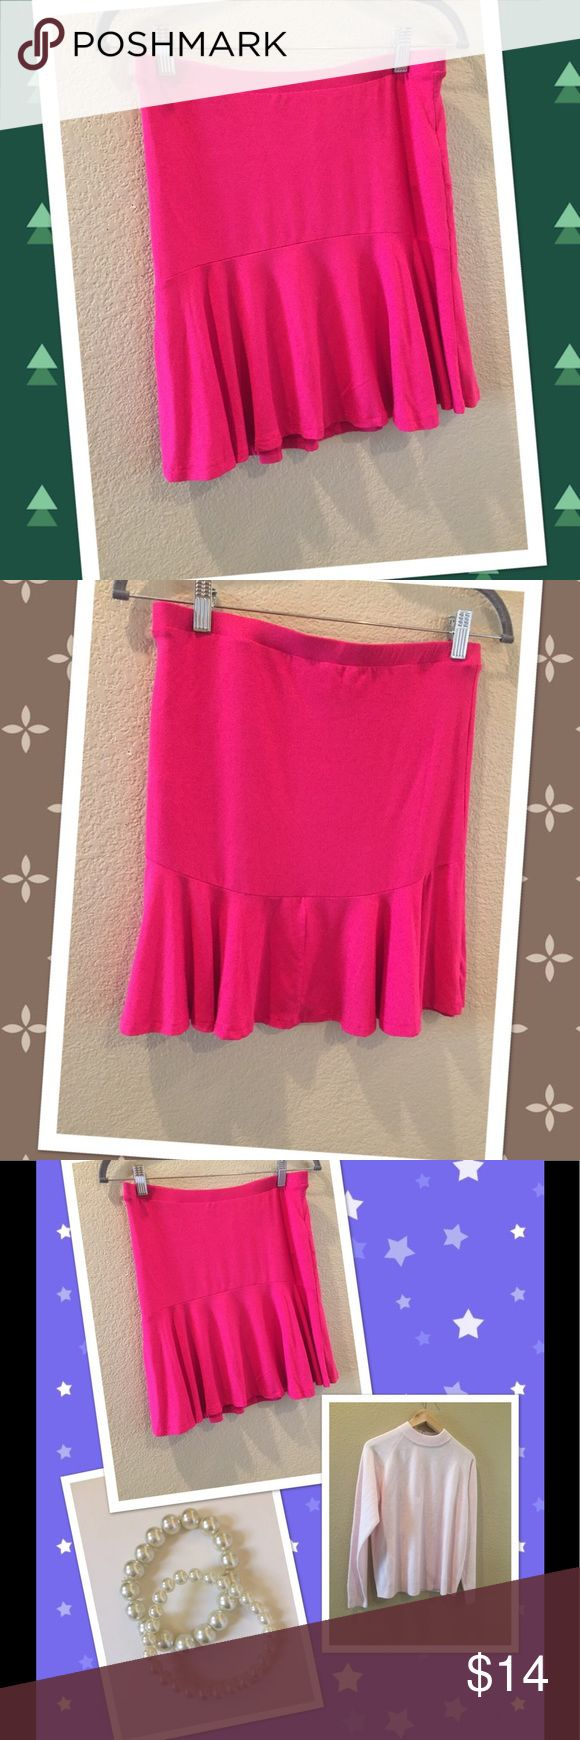 "💙STRADIVARIUS Hot Pink Mini Skirt💙 A gift from England and sadly does not fit me. It is beautiful sexy cut and flew beautifully.  From waiste to bottom 17"" waiste seam to seam 14"".  Can fit S-M.  ❣️ I am open to all offers BUNDLE & send me your offer😍 stradivarius Skirts Mini"